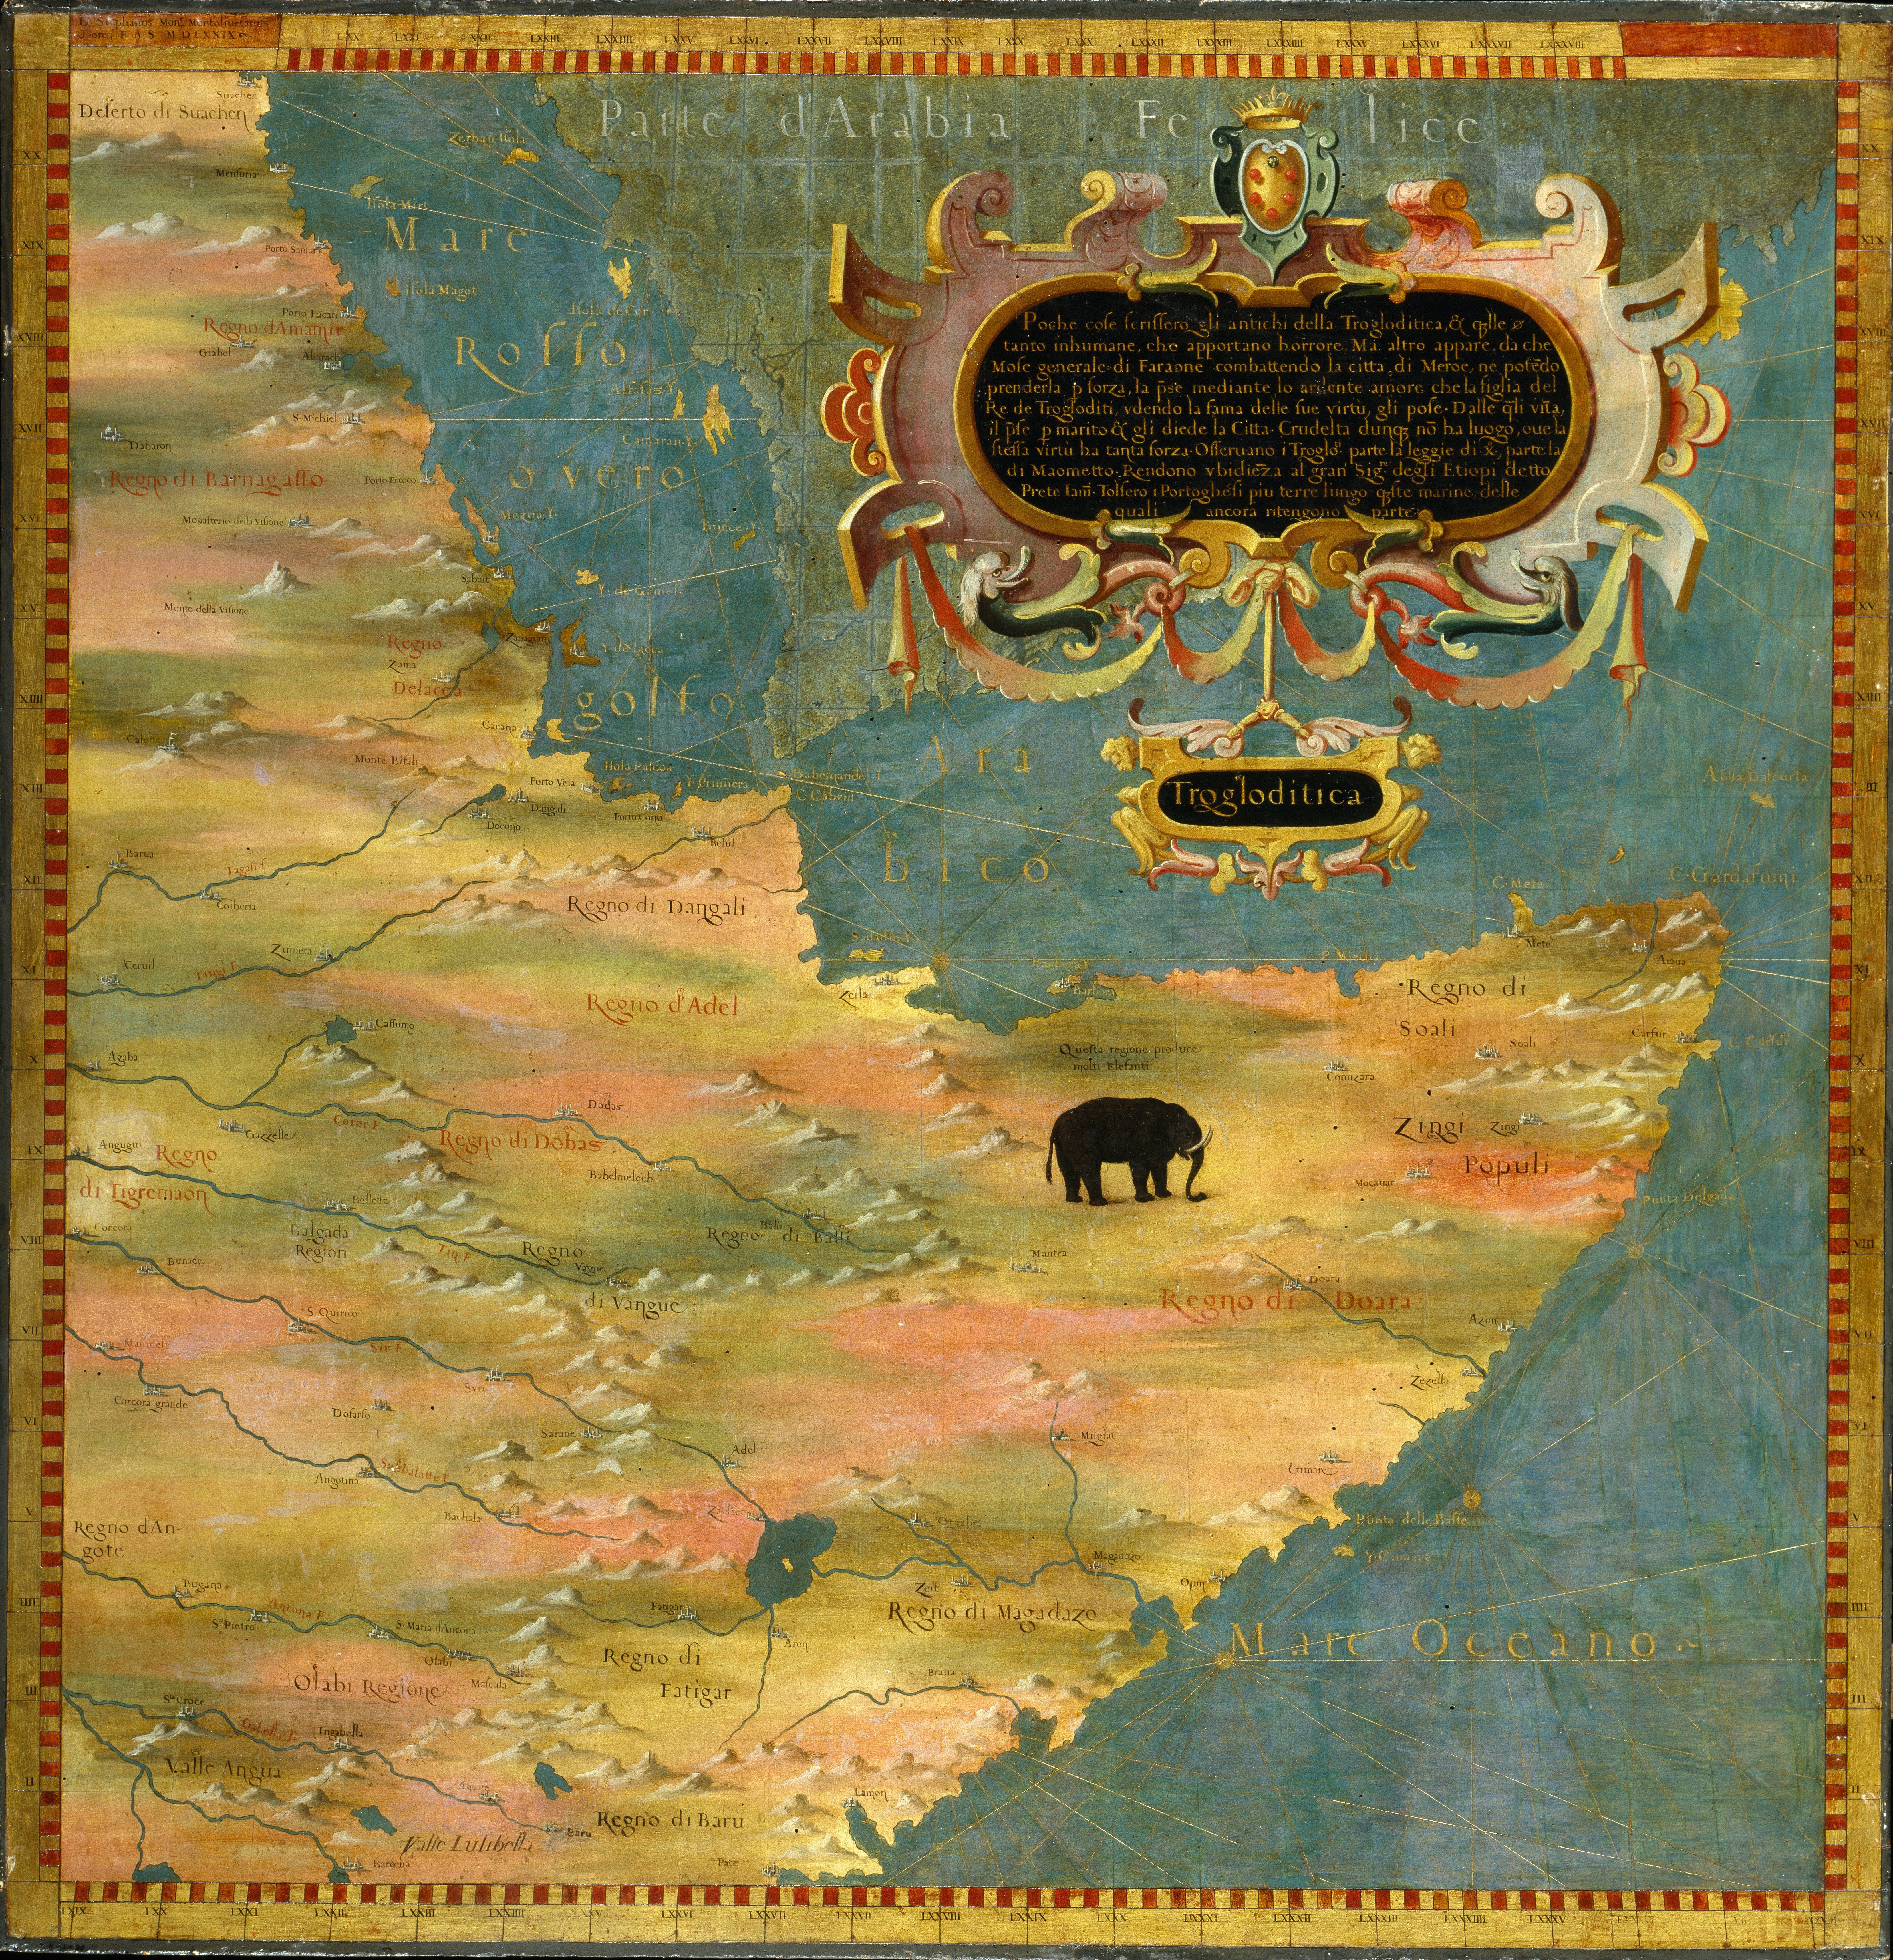 Horn of Africa by Stefano Bonsignori 1579